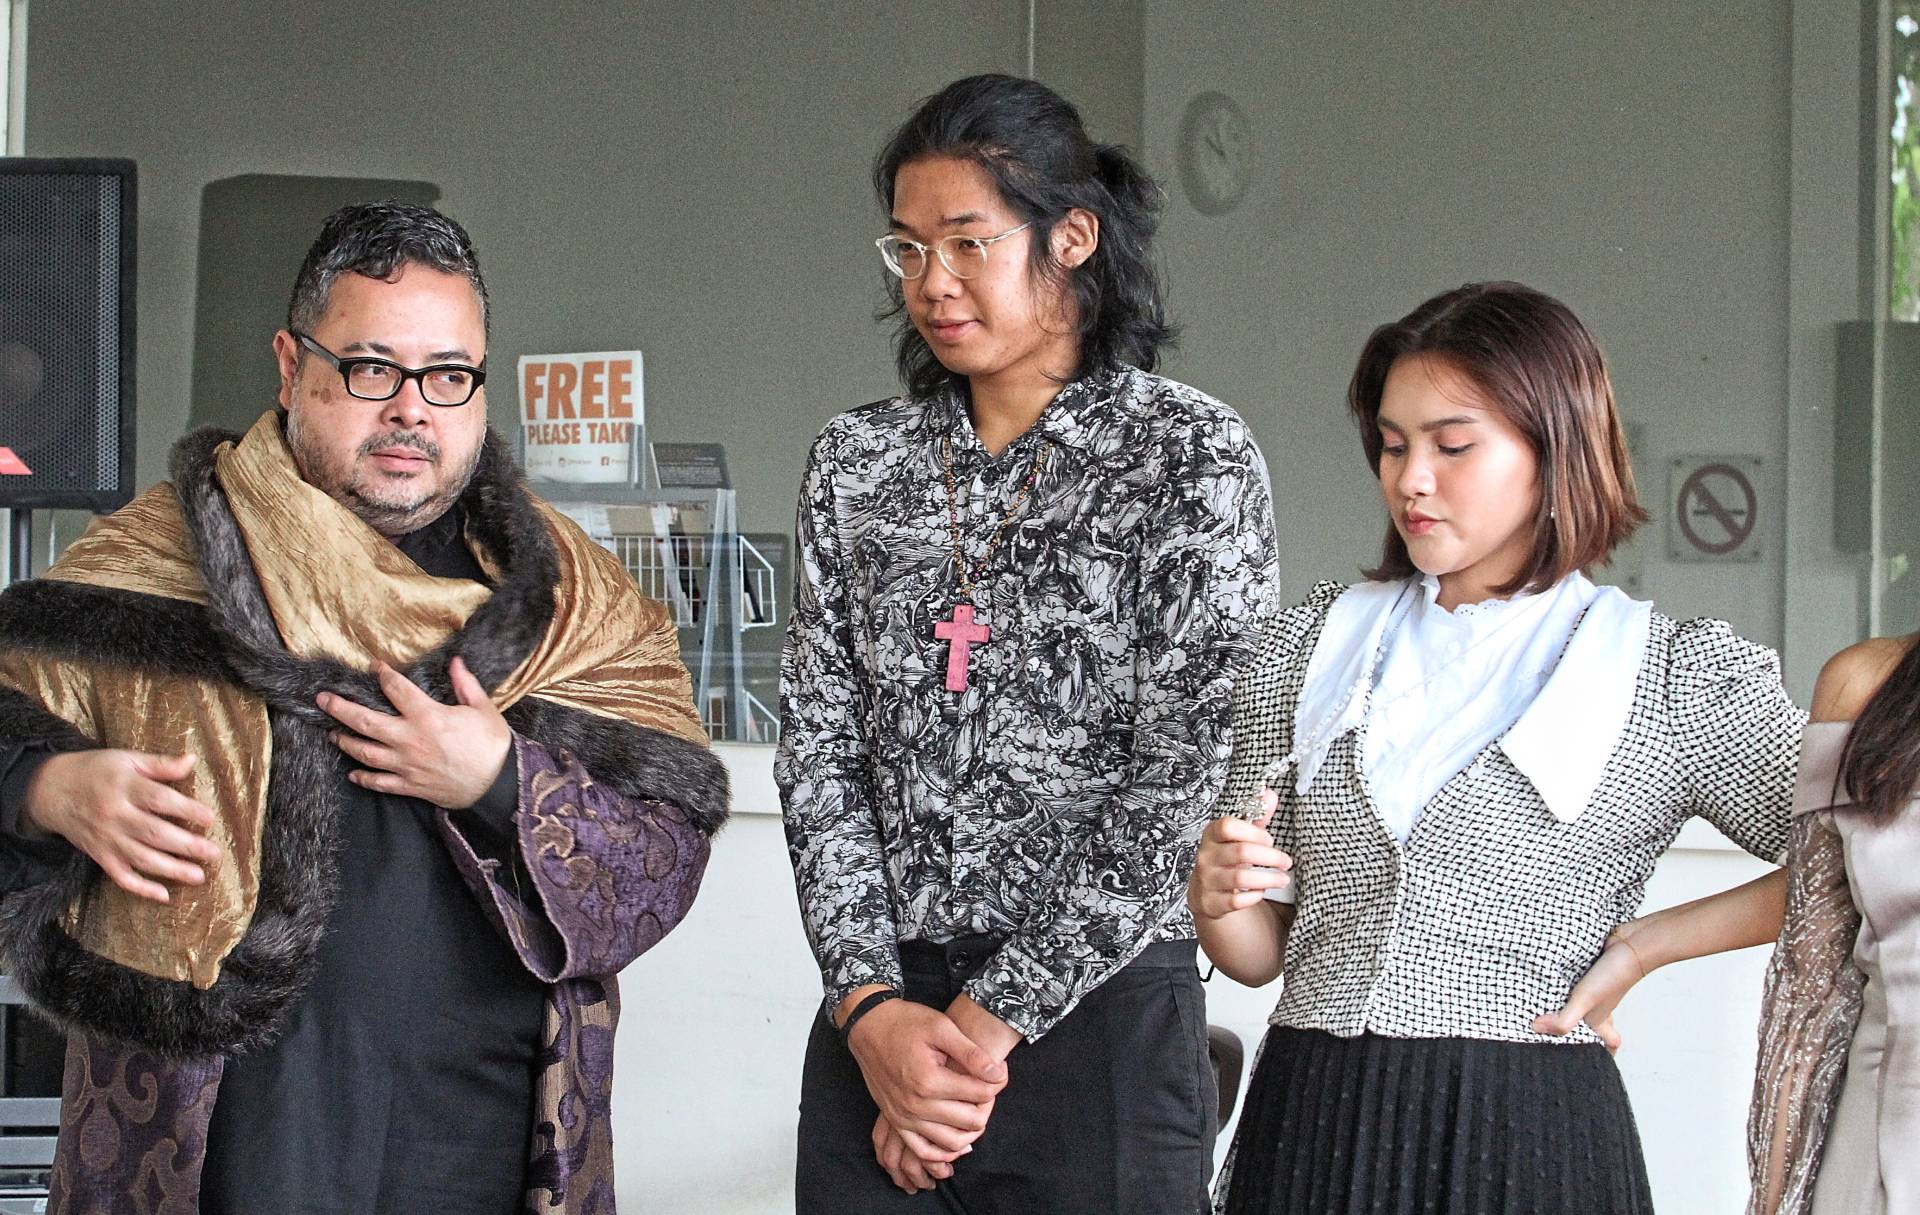 Reza Zainal Abidin (left), Axyr William and Mia Sara Shauki play Signor Chapuys, Chapuy's attendant and Lady Margaret More respectively in 'A Man For All Seasons'. Photo: Sam Tham/The Star